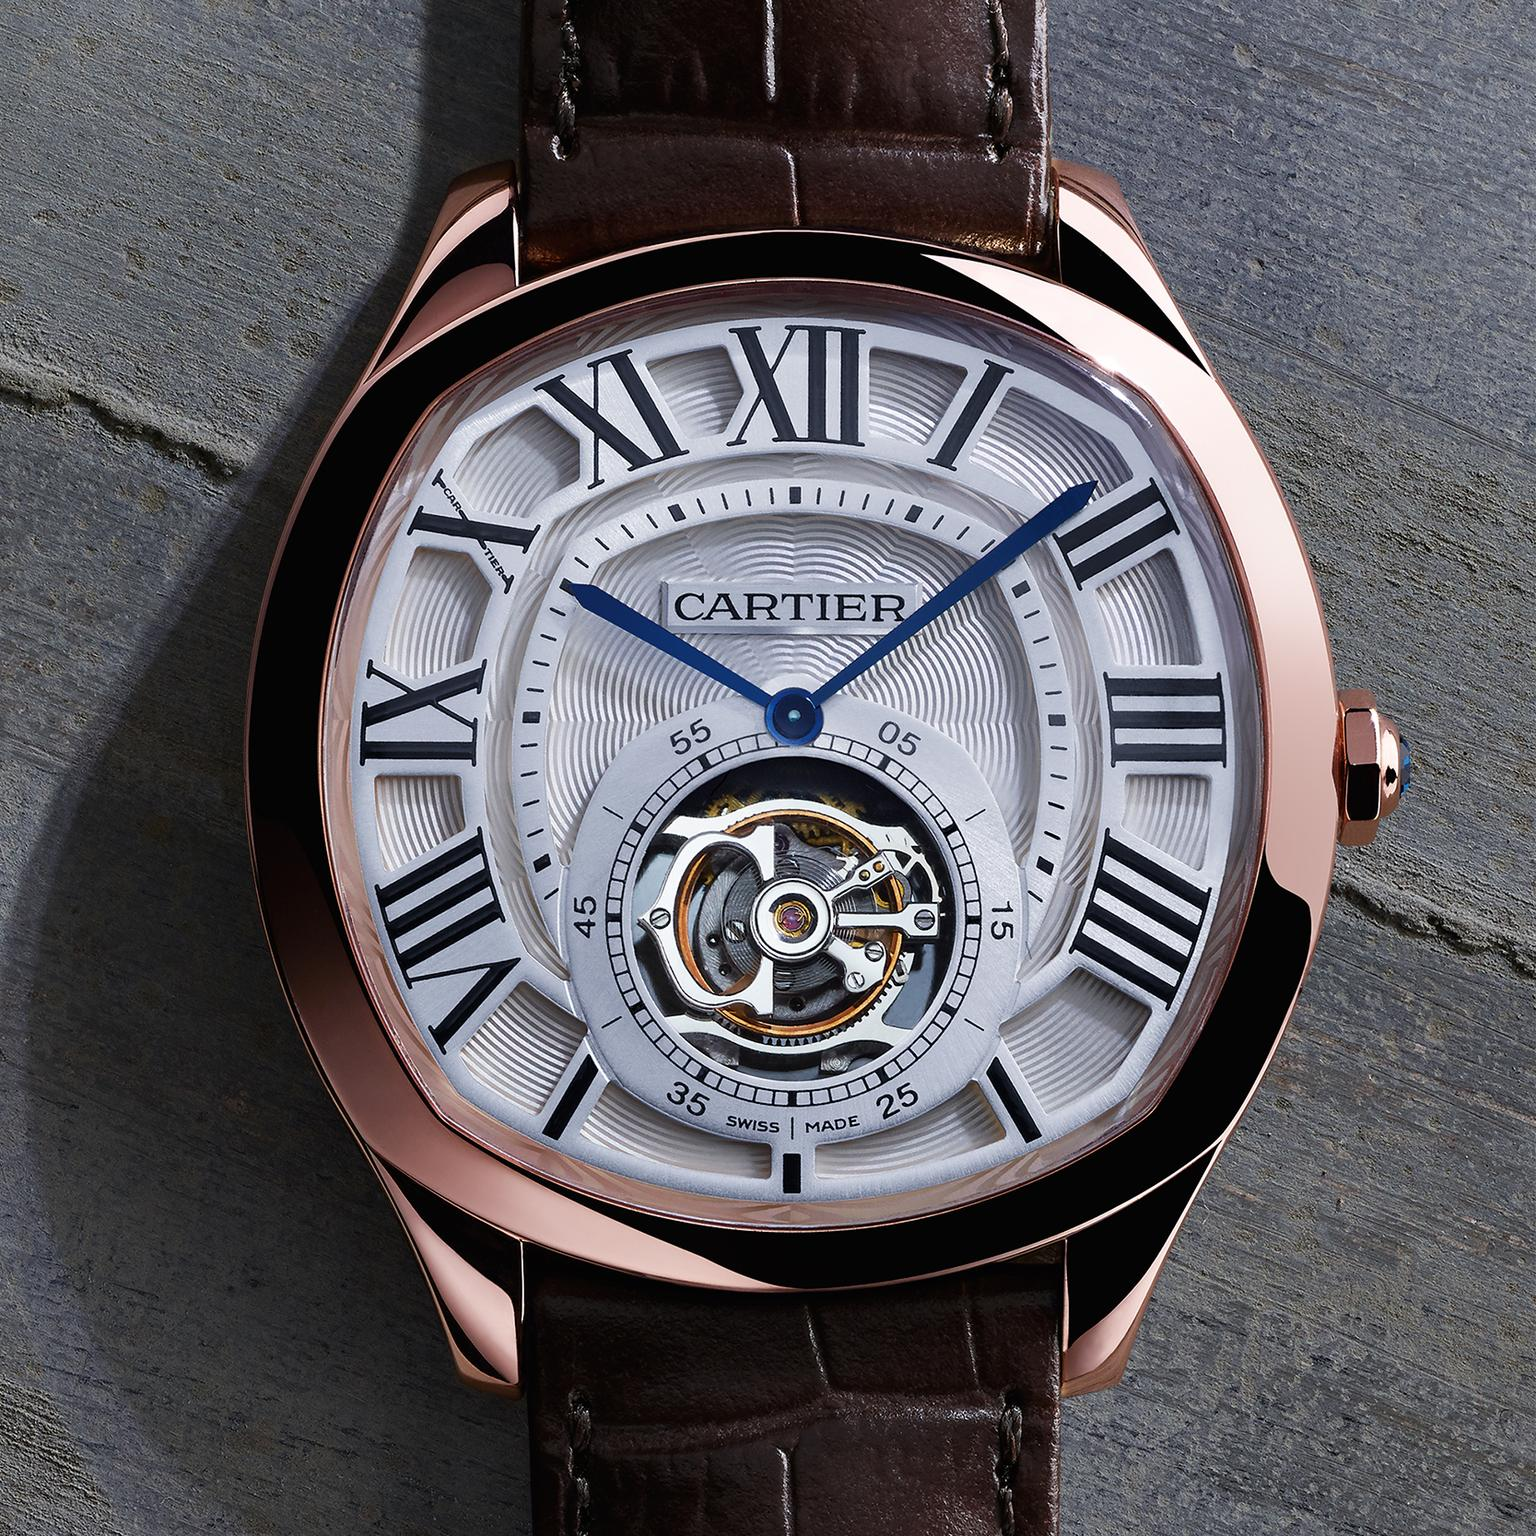 Drive de Cartier tourbillon watch in rose gold   Cartier   The     Cartier Drive watch in rose gold